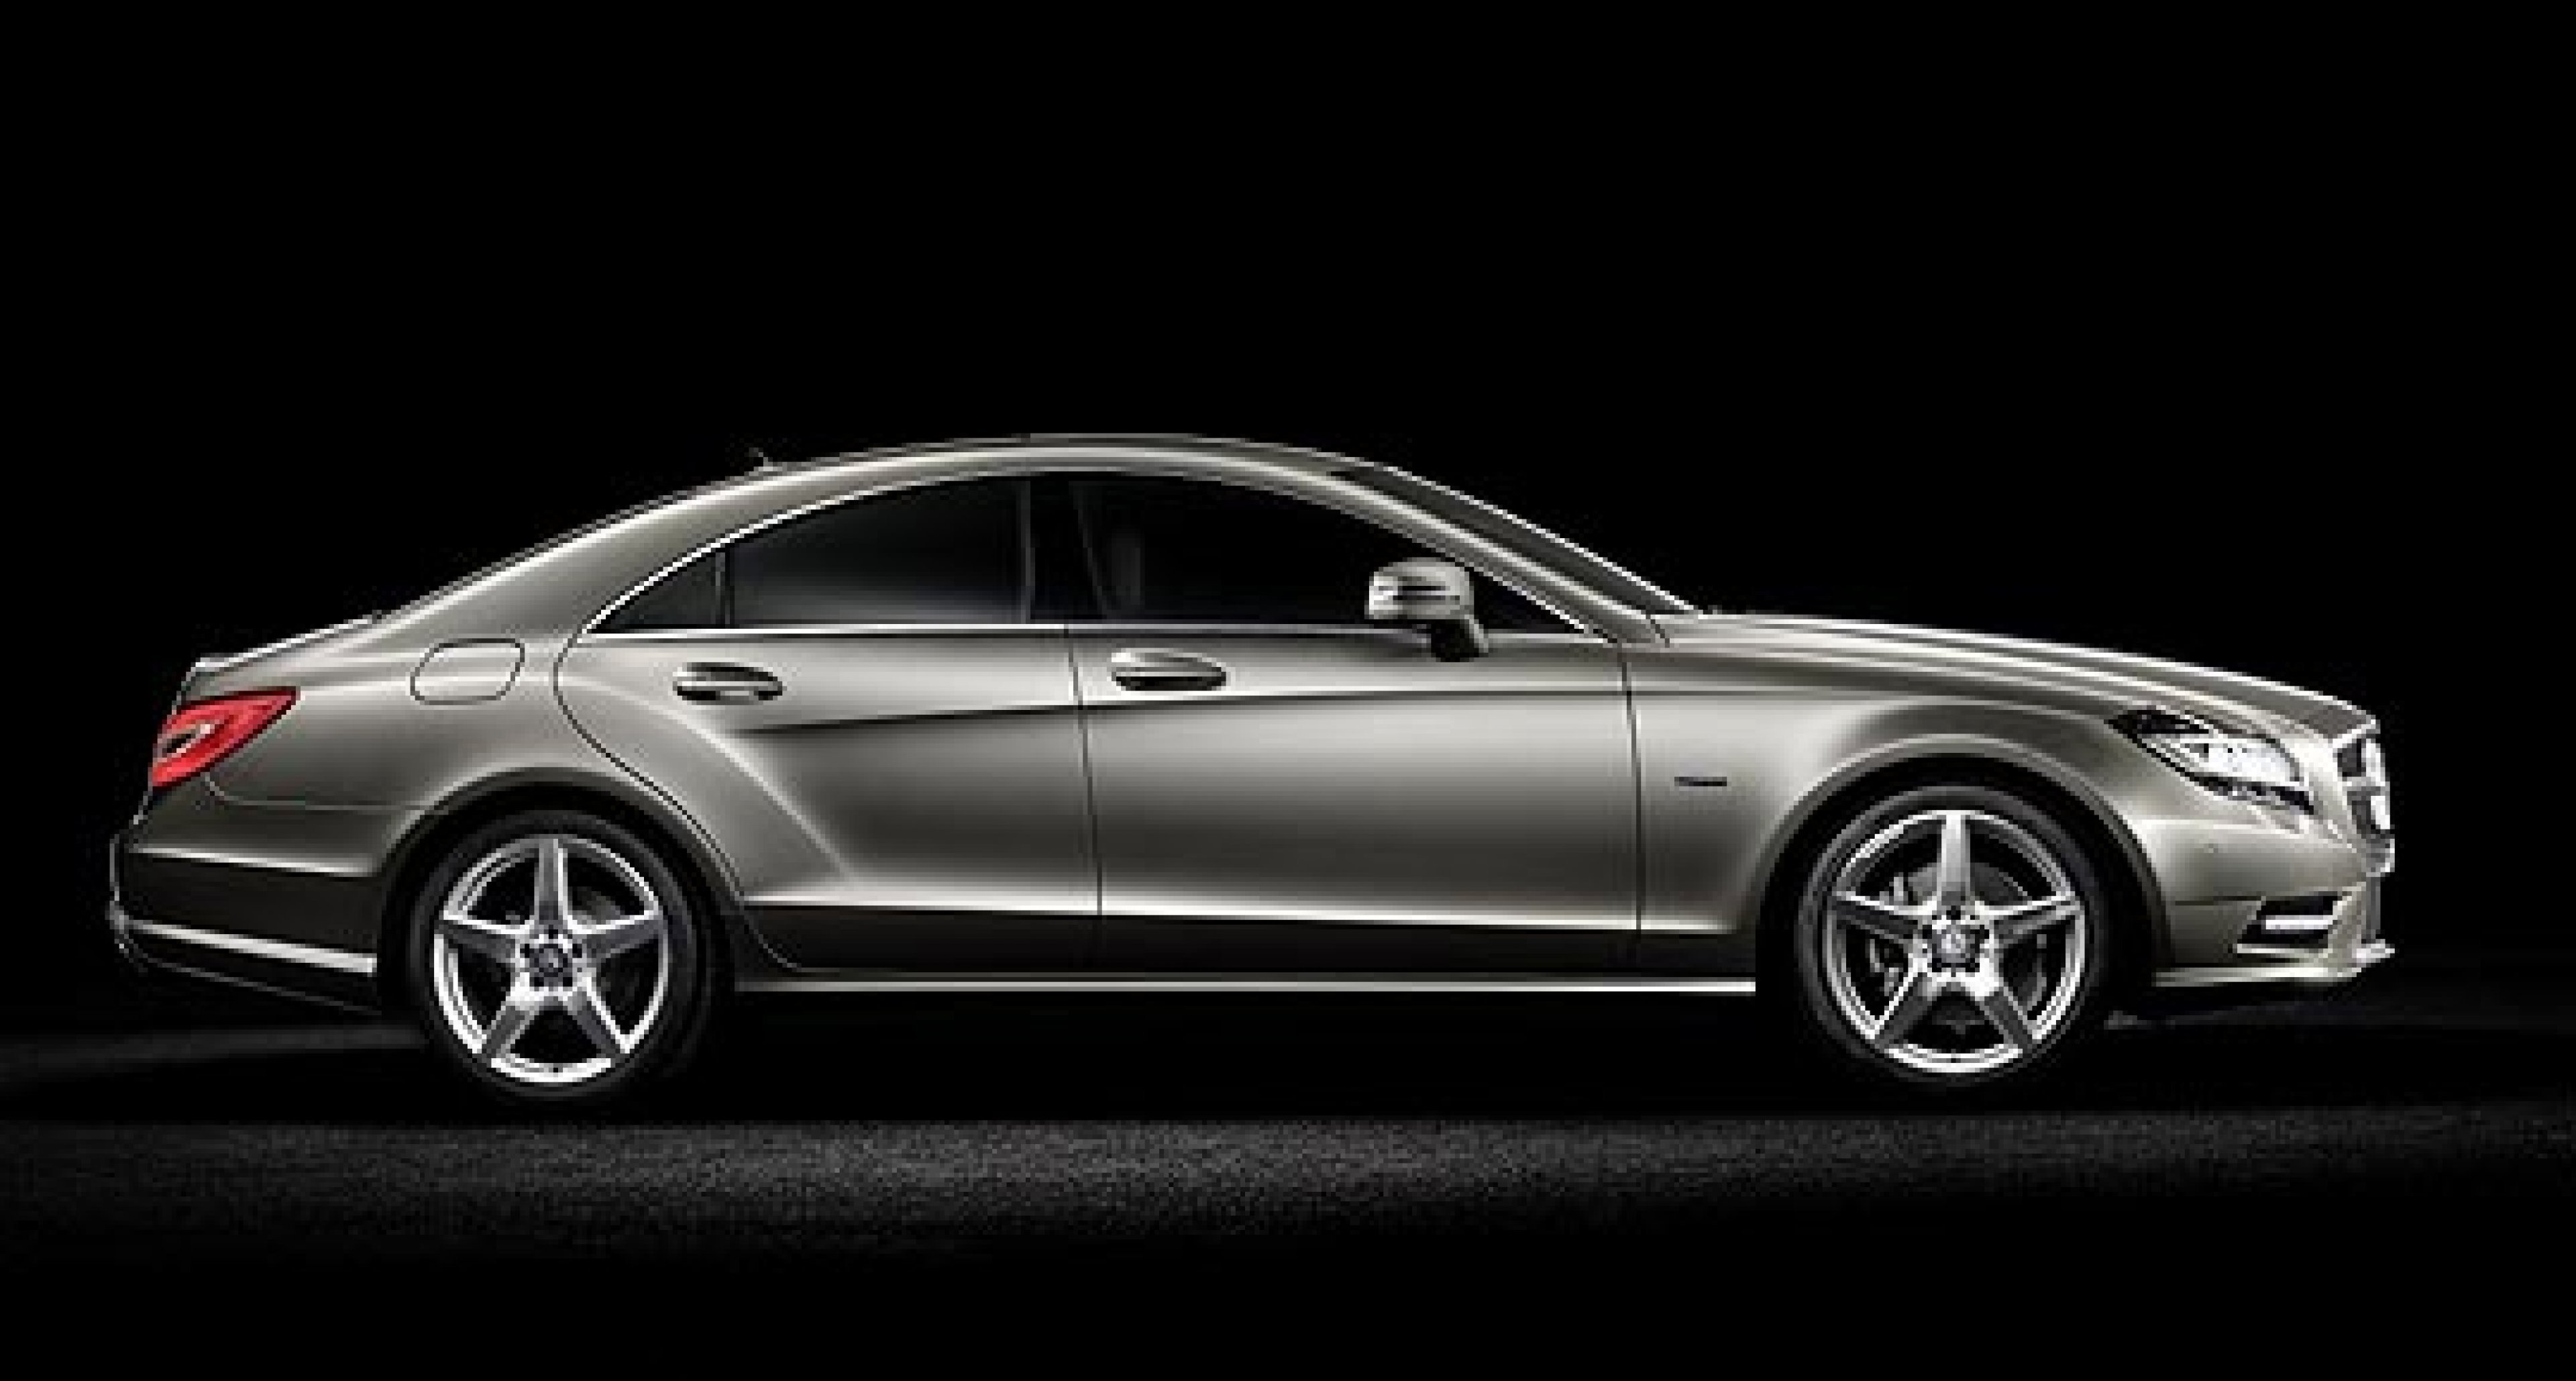 The All-New Mercedes-Benz CLS